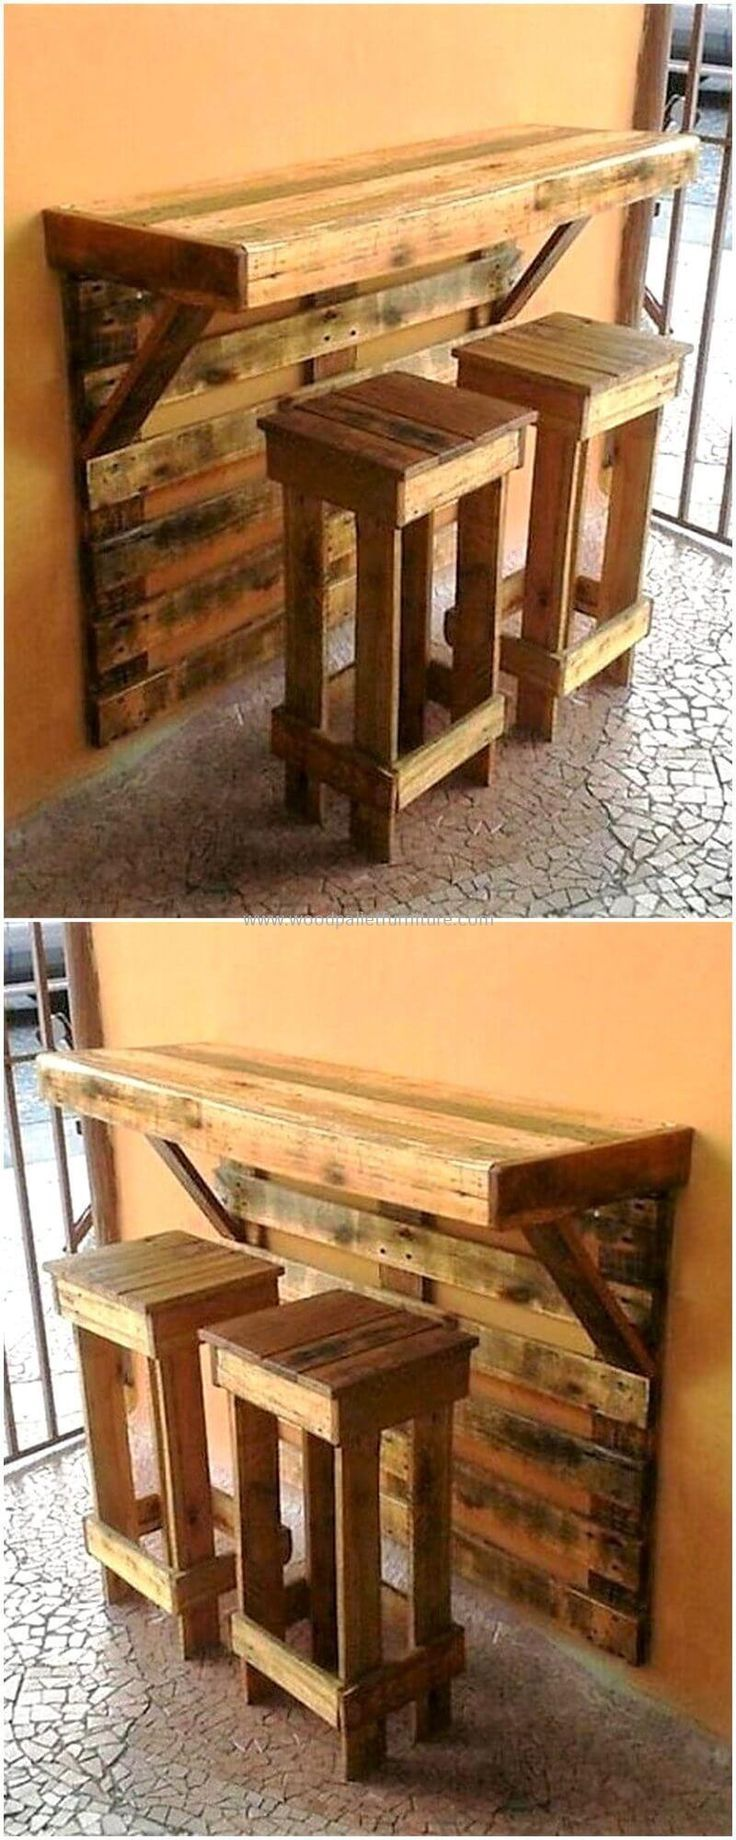 This is artistically constructed pallets wood breakfast table, crafted to provid…